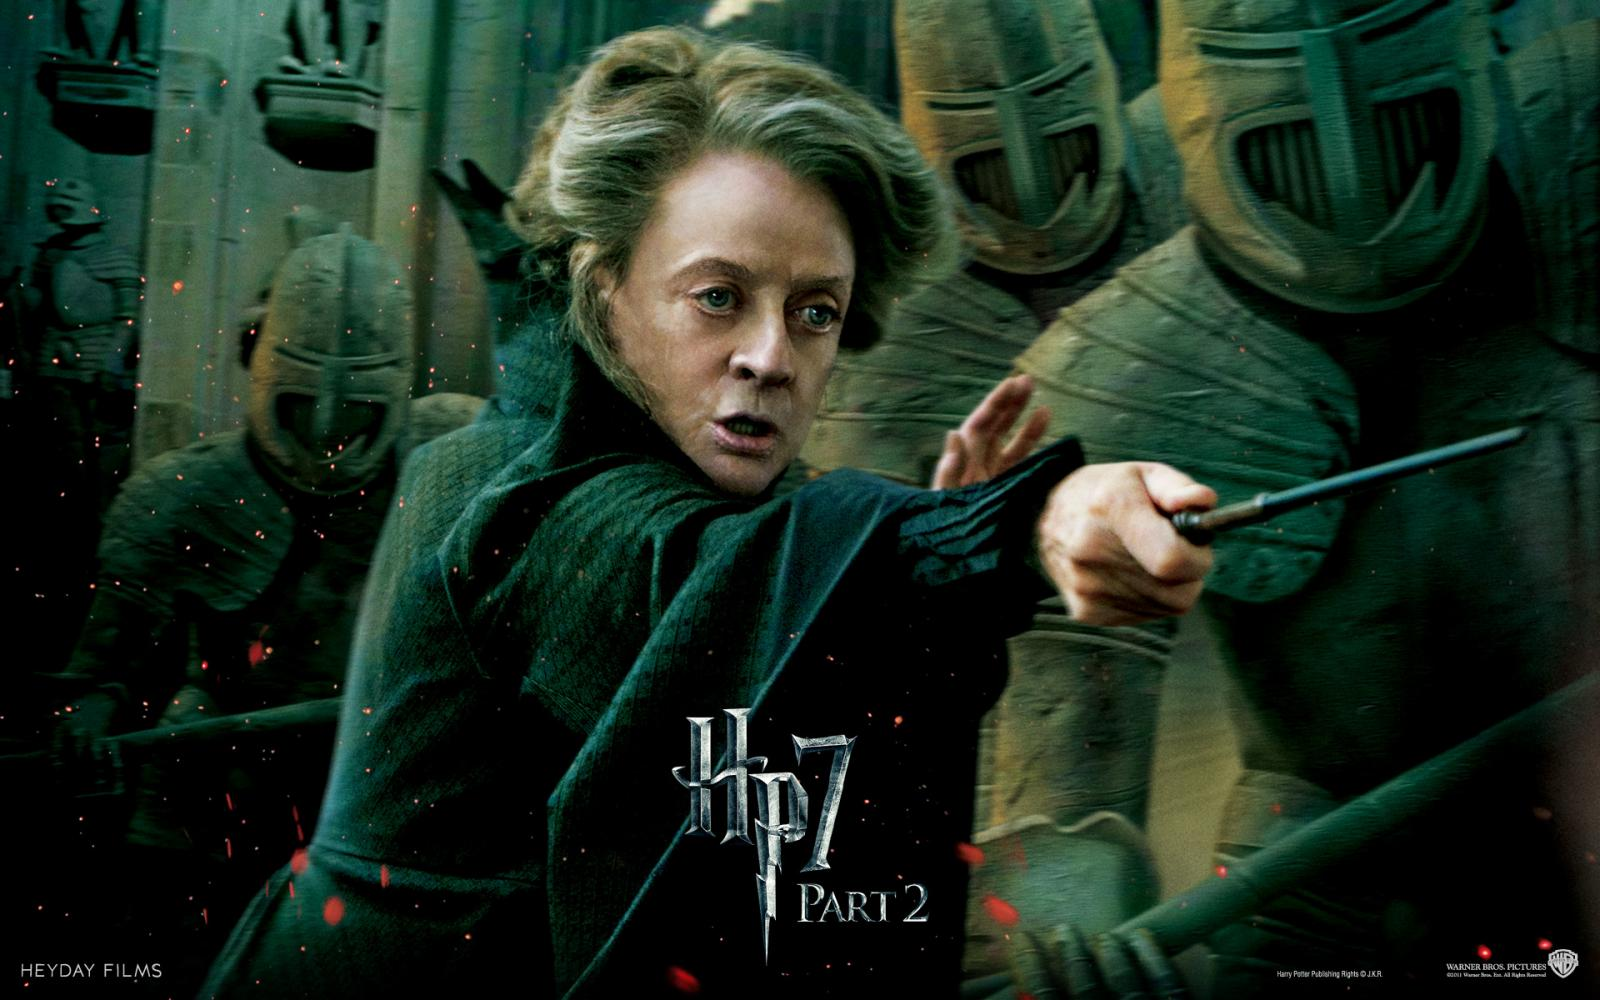 Wallpaper HP7 Professor Minerva McGonagall - Maggie Smith Harry Potter